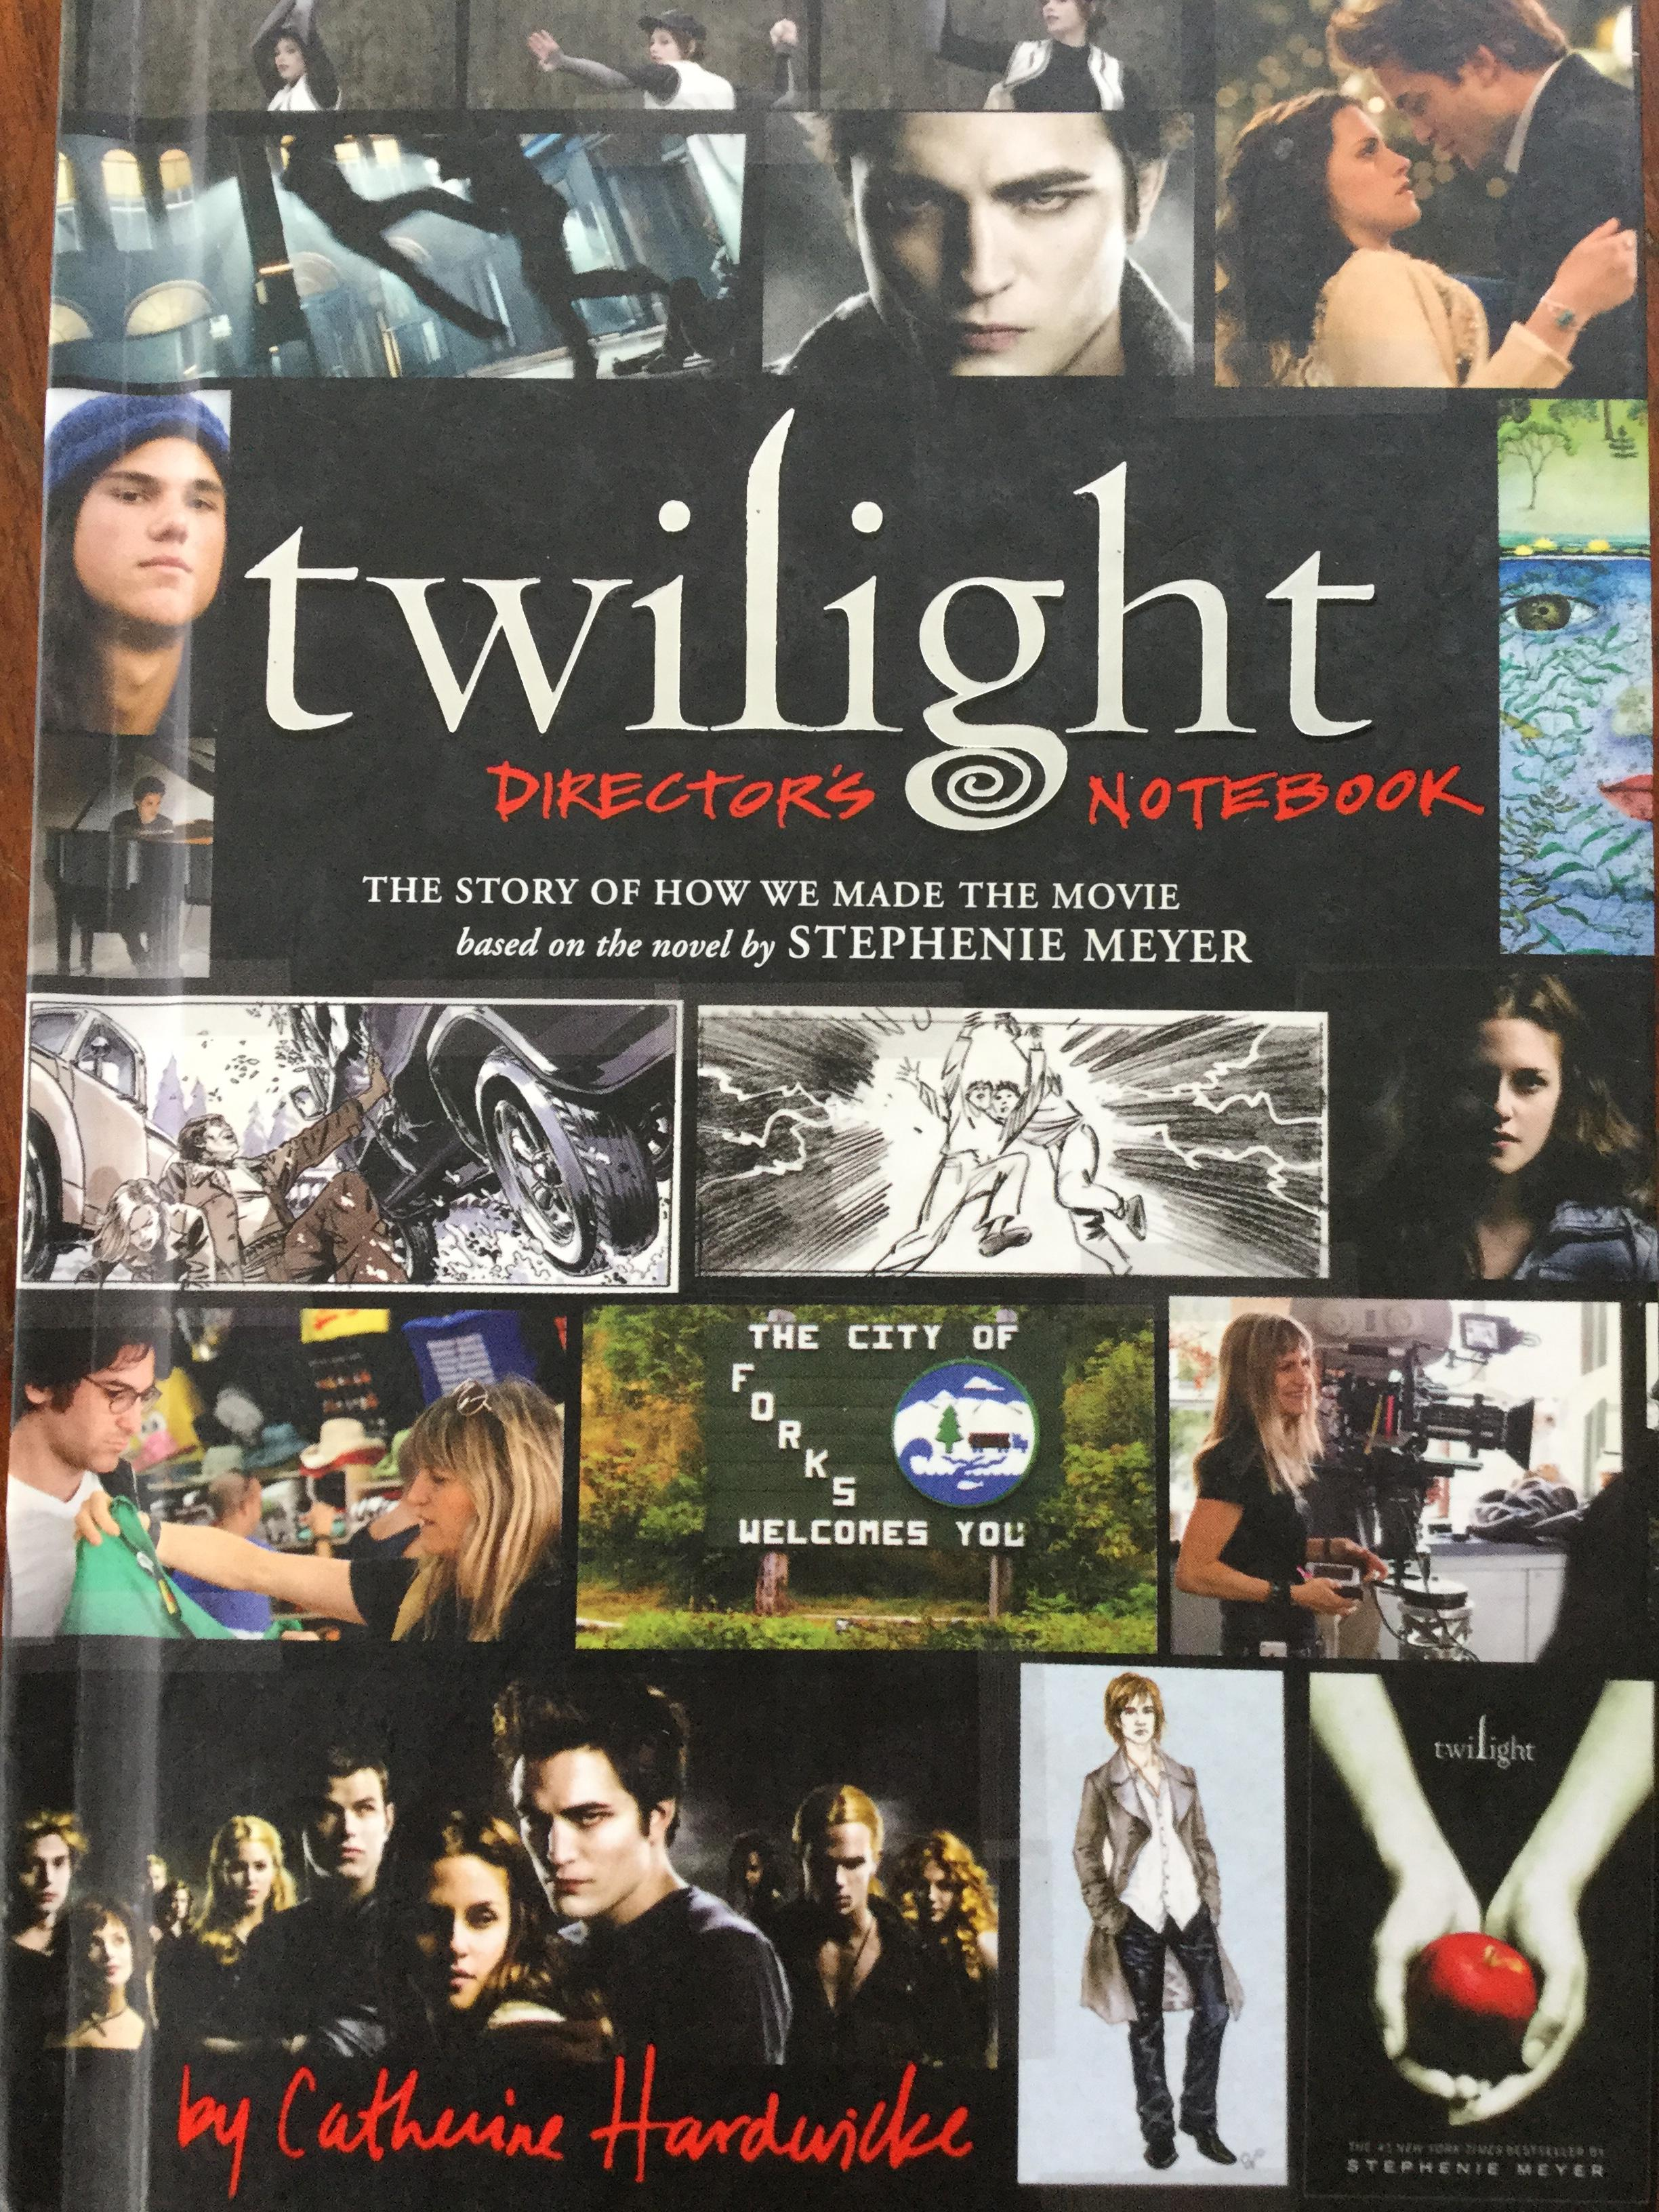 Twilight. Directors Notebook The Story of How we made the movie. based on the novel by. Stephenie Meyer. By Catherine Hardwicke